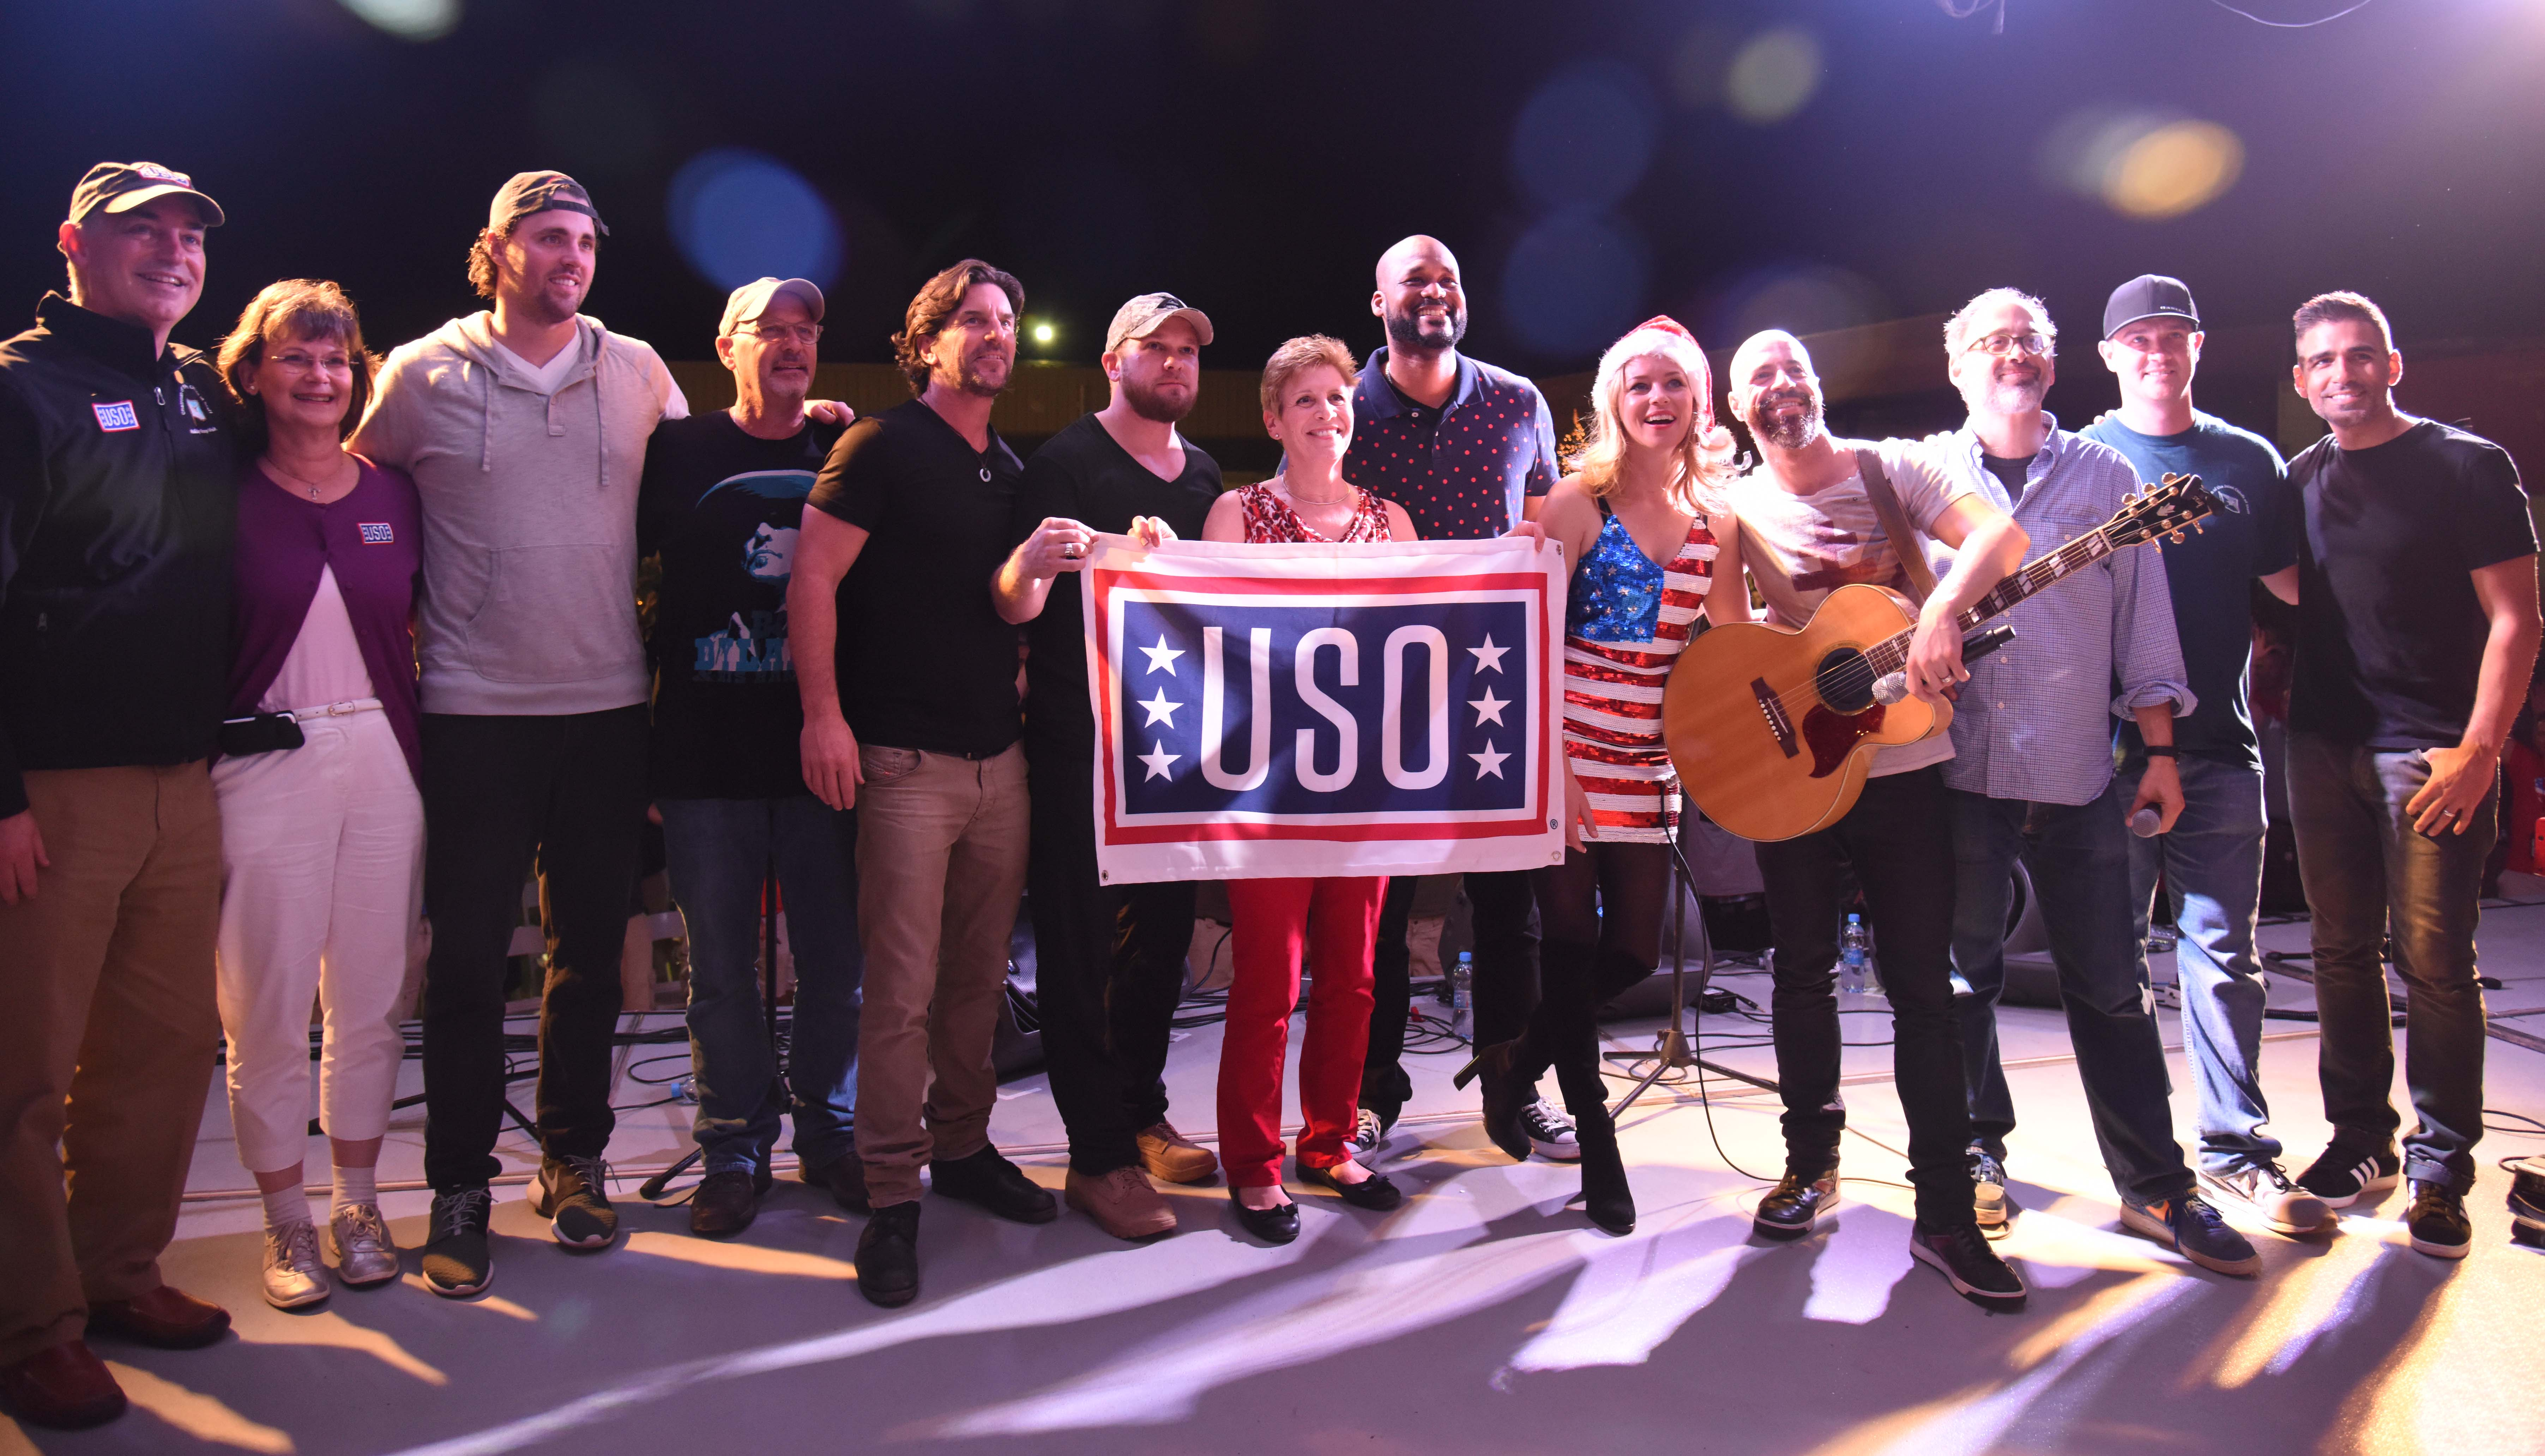 Members of the 2015 USO Entertainment Troupe pose for a photo during their trip to Camp Lemonnier, Djibouti, Dec. 6, 2015. Actress Elizabeth Banks co-hosted the tour with actor David Wain, introducing numerous acts including comedian Sydney Castillo, singers Chris Daughtry, Brett James, Bill Montana, and Kyle Jacobs, and Boston Red Sox pitchers Heath Hembree and Steven Wright. (U.S. Air Force photo by Staff Sgt. Victoria Sneed)